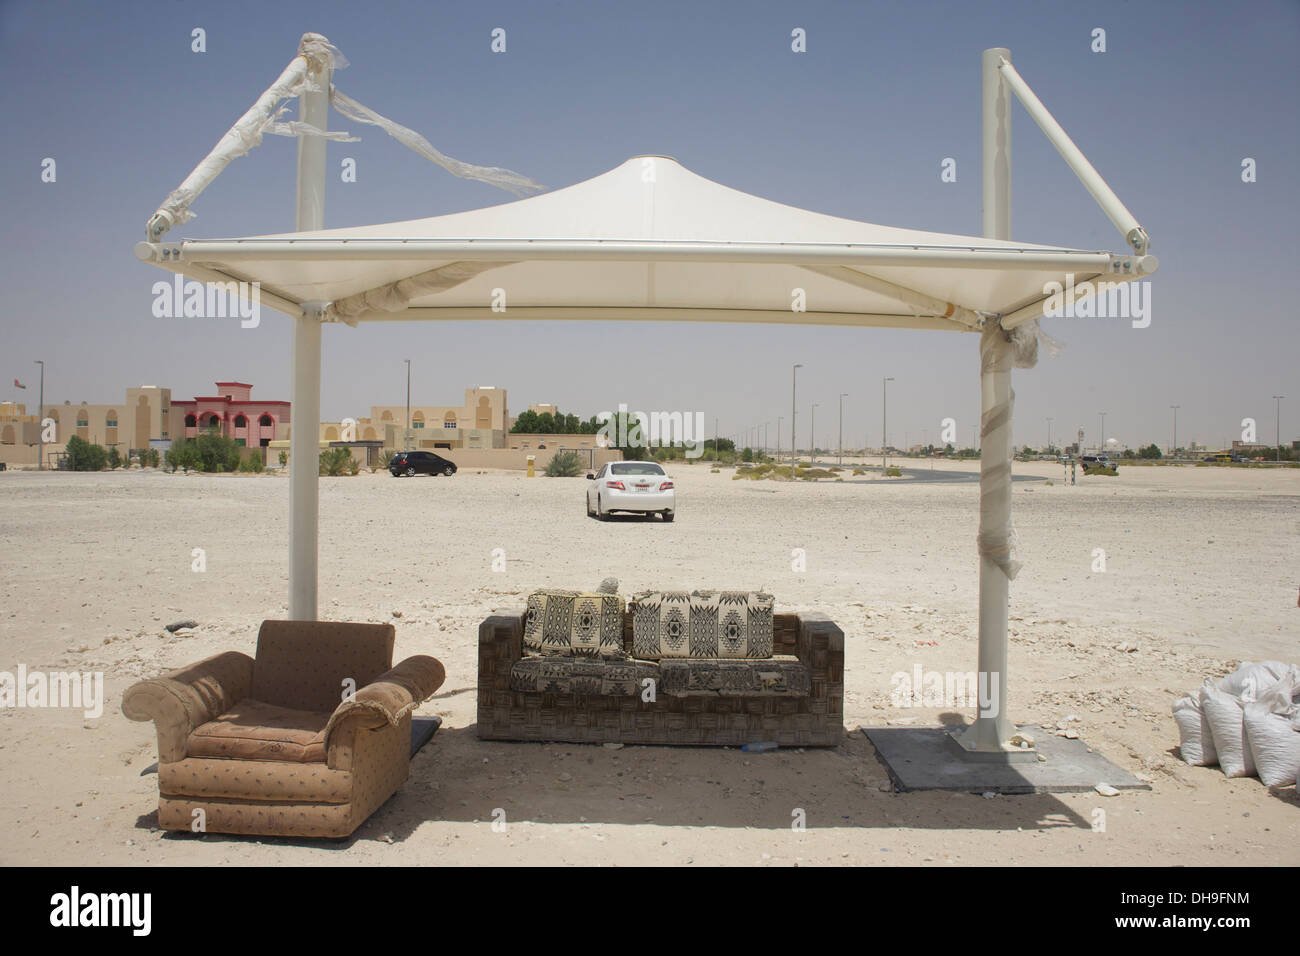 An 'upgraded' bus shelter in greater Abu Dhabi - Stock Image